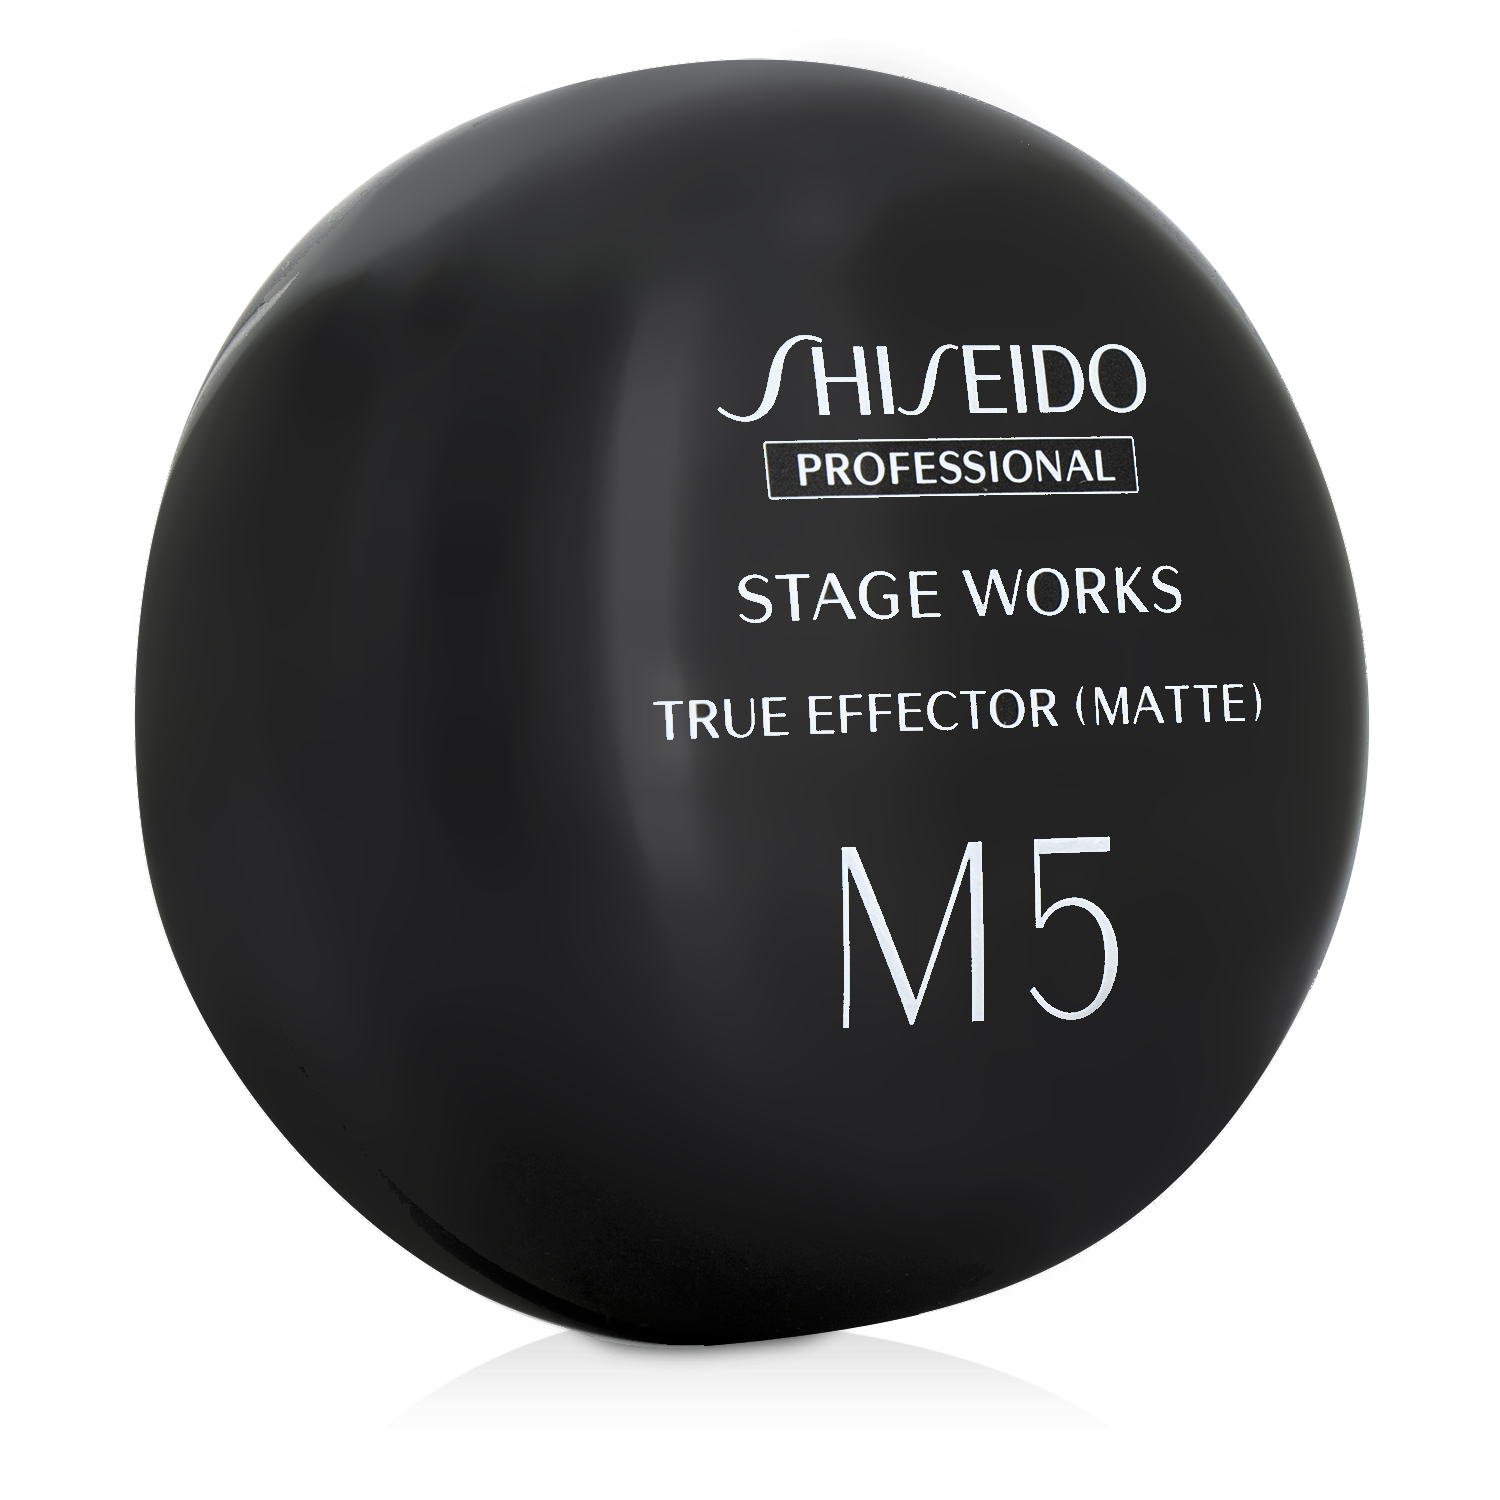 Stage Works True Effector - # M5 (Matte)